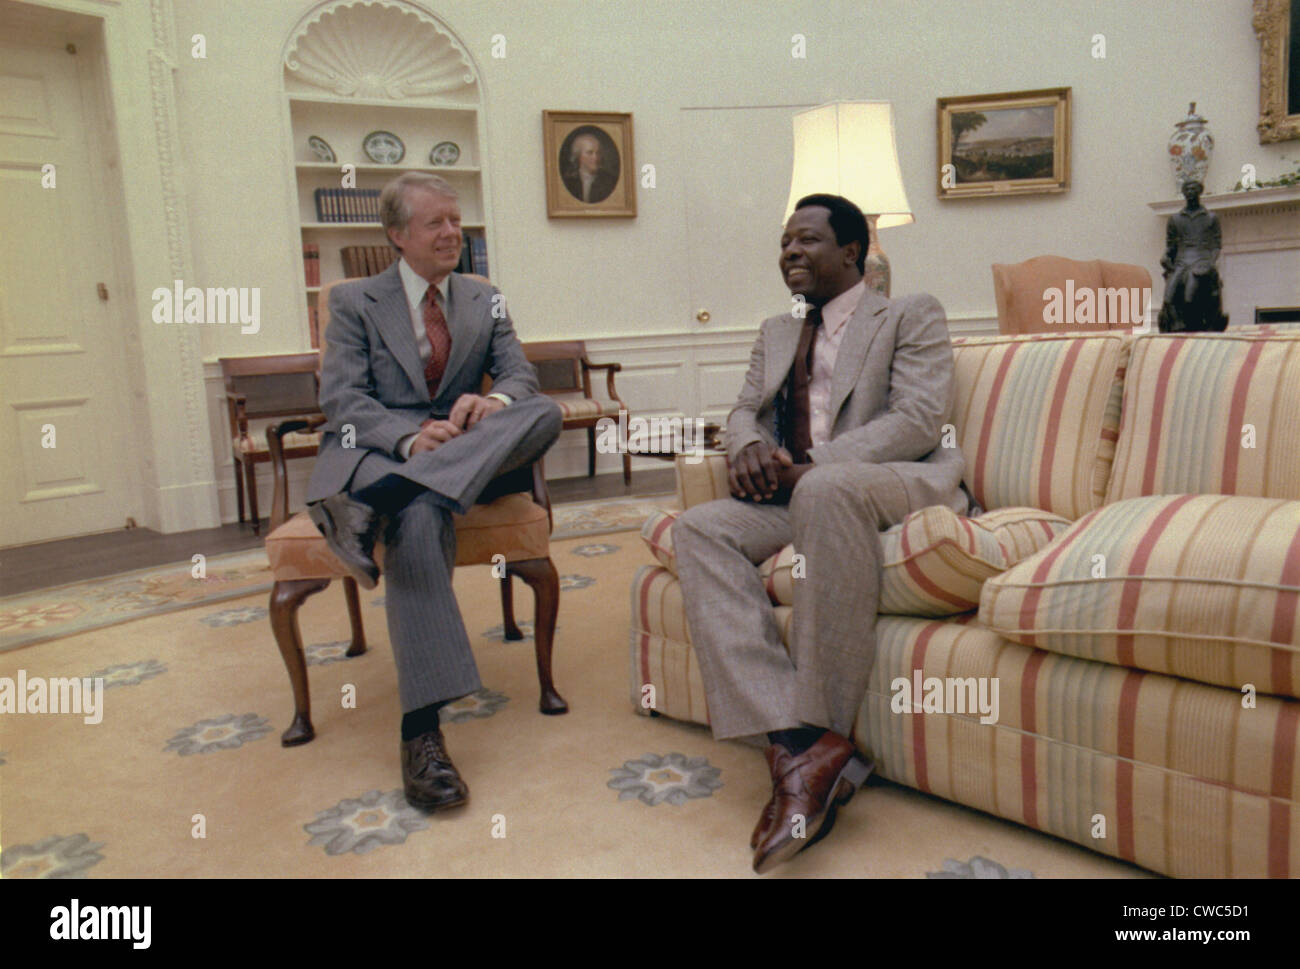 jimmy carter oval office. Jimmy Carter Chatting With Hank Aaron In The Oval Office. Was Governor Of Georgia And At Atlanta Braves Game When Office A